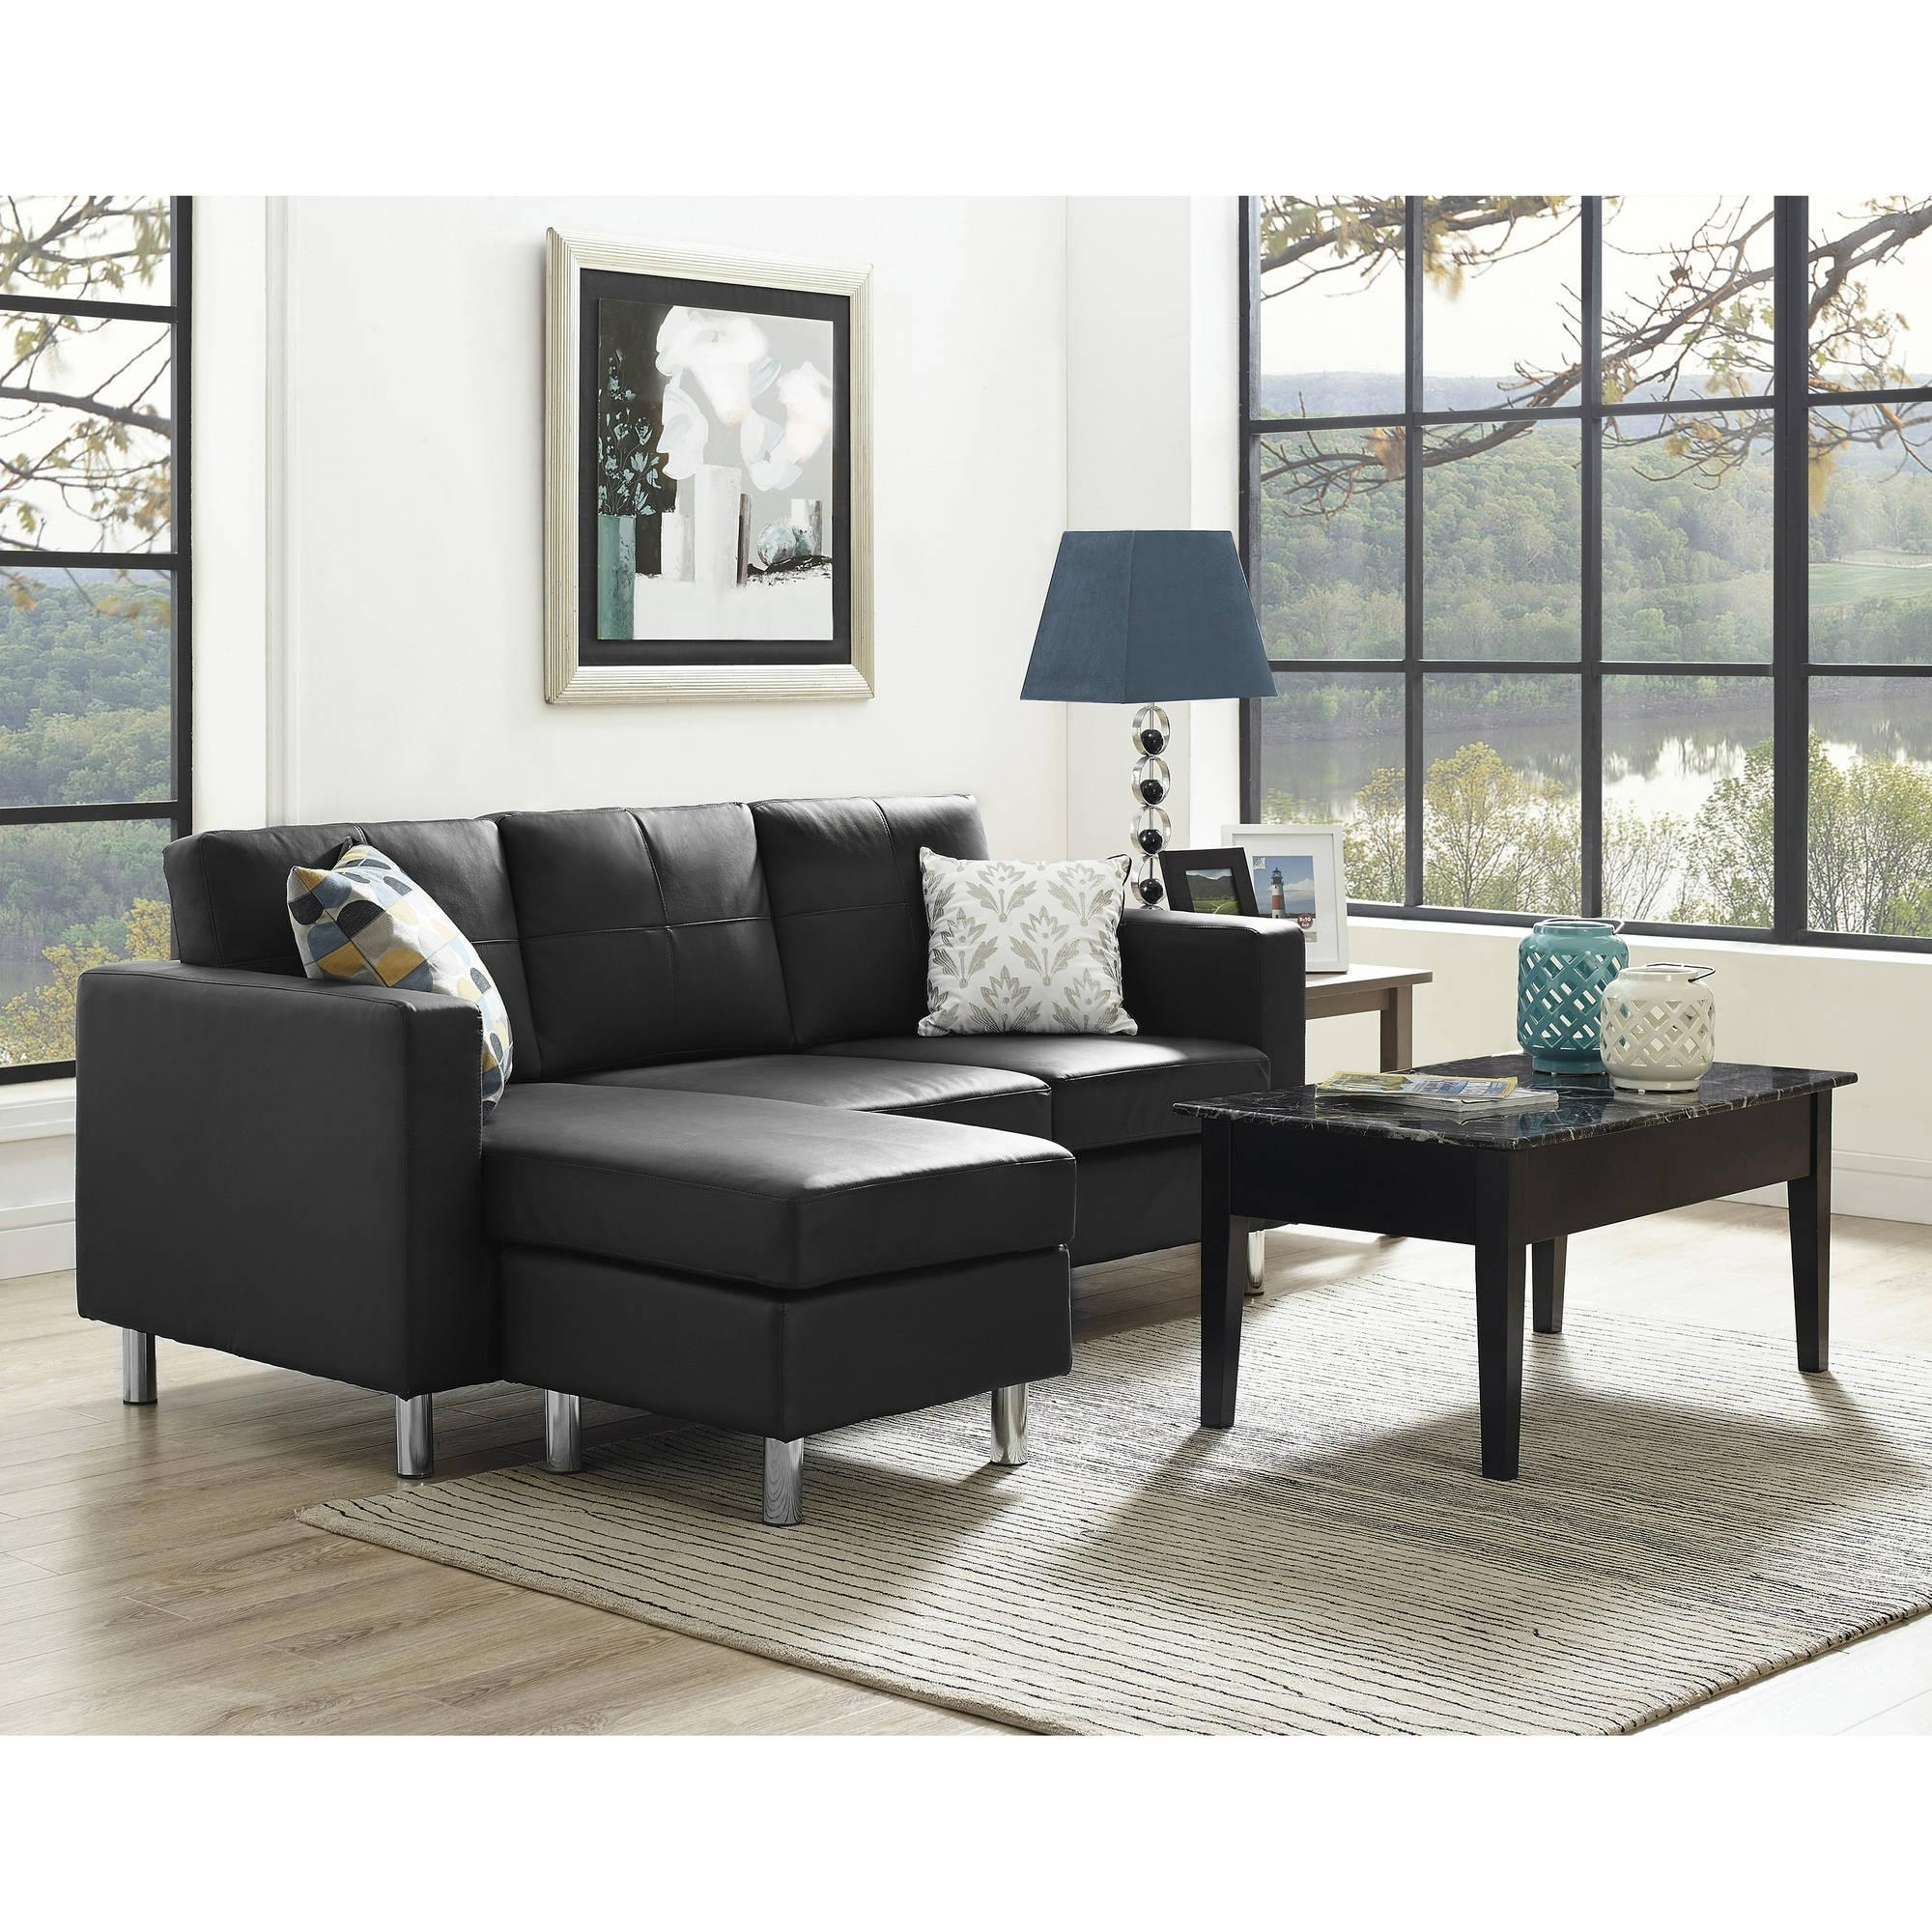 Dorel Living Small Spaces Configurable Sectional Sofa, Multiple With Sectional Sofas In Small Spaces (Image 9 of 20)